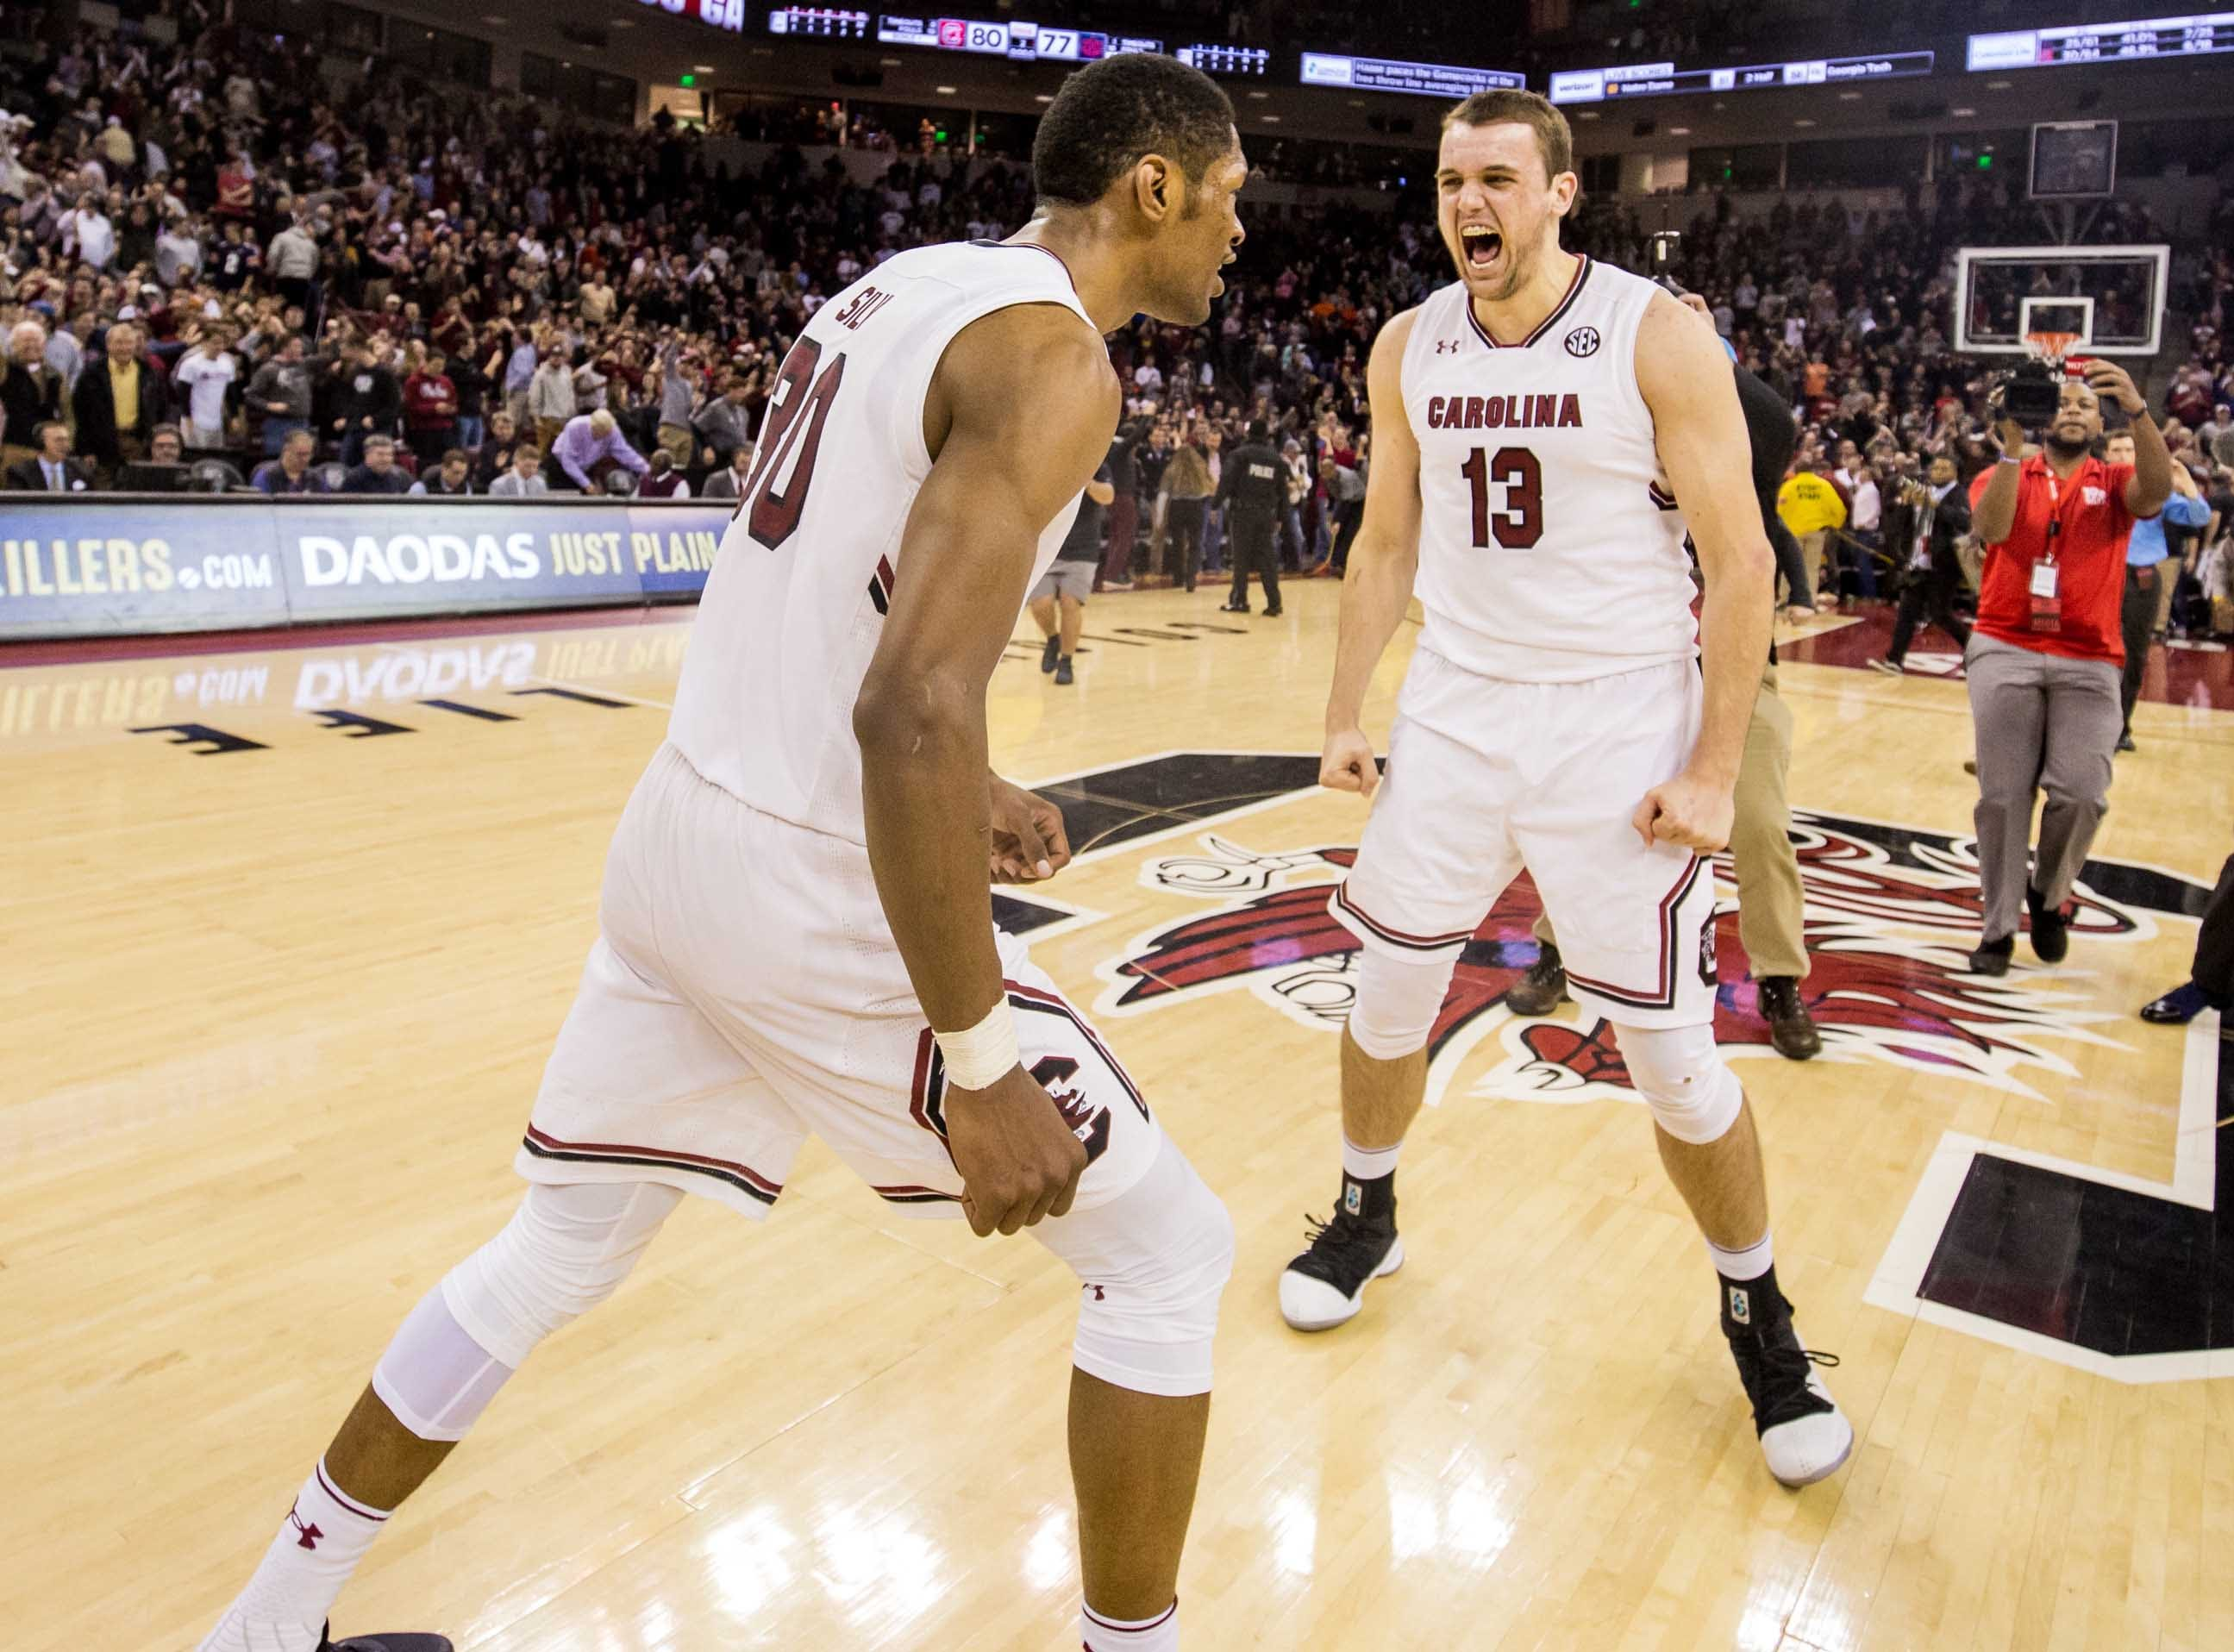 Jan 22, 2019; Columbia, SC, USA; South Carolina Gamecocks forward Chris Silva (30) and South Carolina Gamecocks forward Felipe Haase (13) celebrate following the South Carolina Gamecocks 80-77 win over the Auburn Tigers at Colonial Life Arena. Mandatory Credit: Jeff Blake-USA TODAY Sports